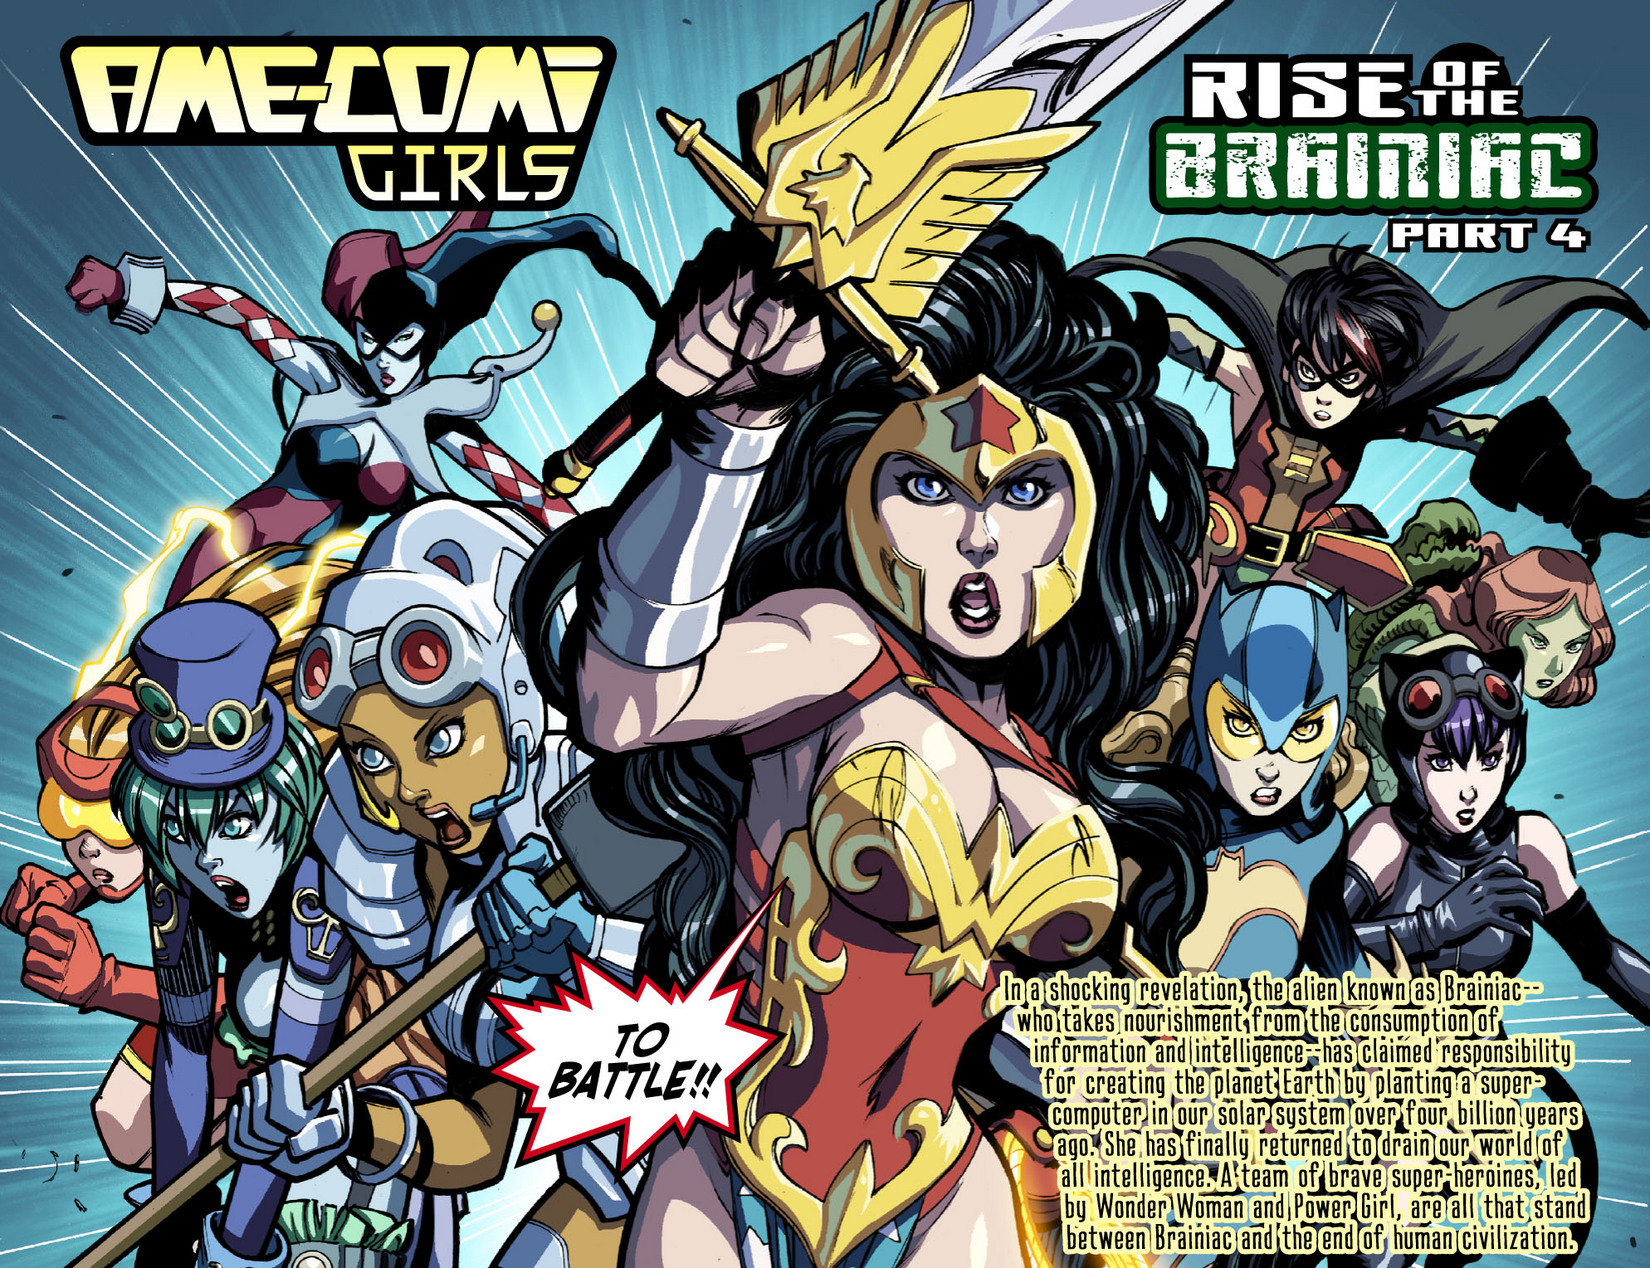 Read online Ame-Comi Girls comic -  Issue #4 - 3